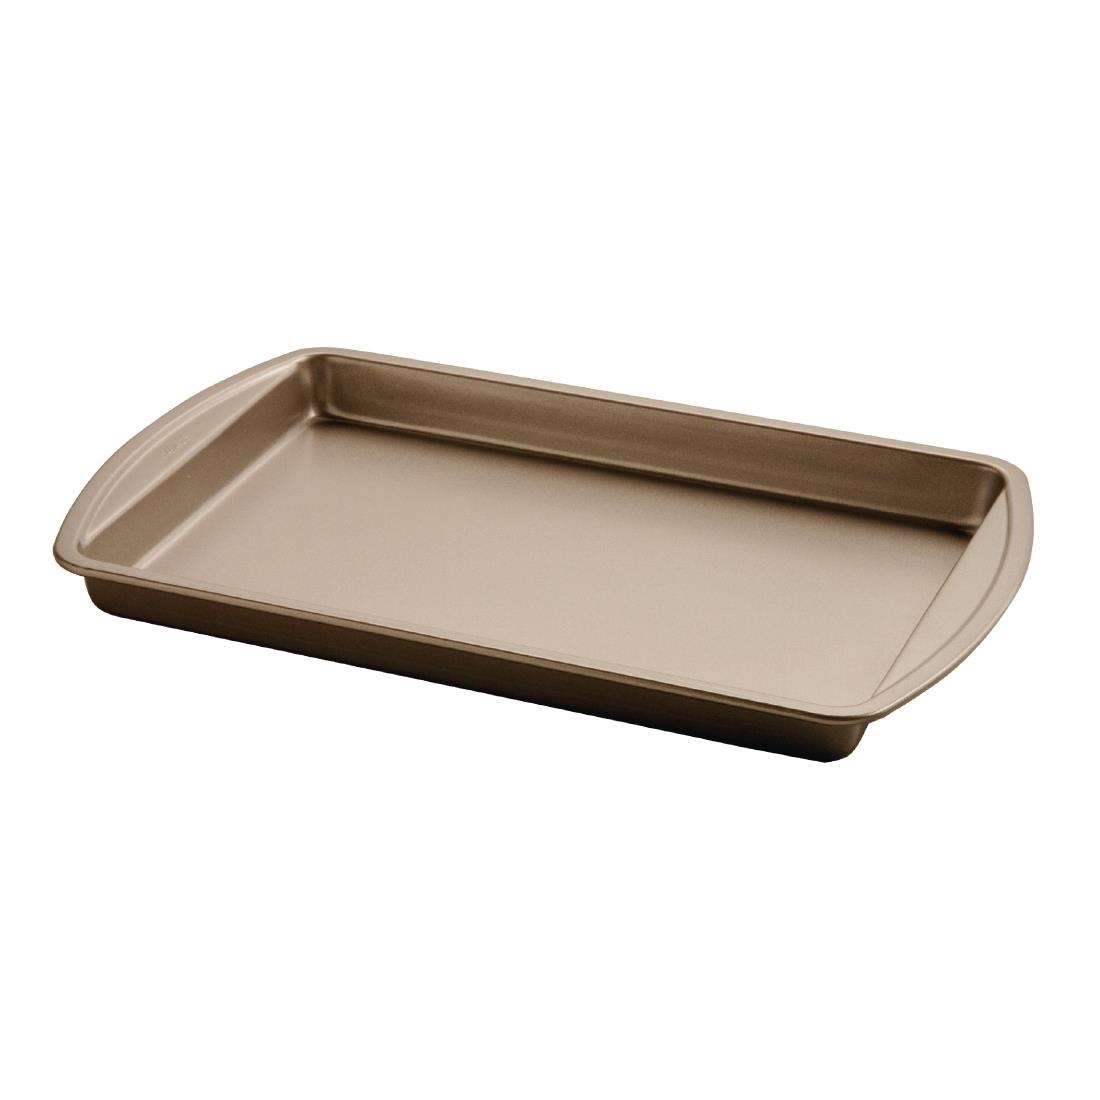 Image of Avanti Non-Stick Baking Tray 495 x 305mm